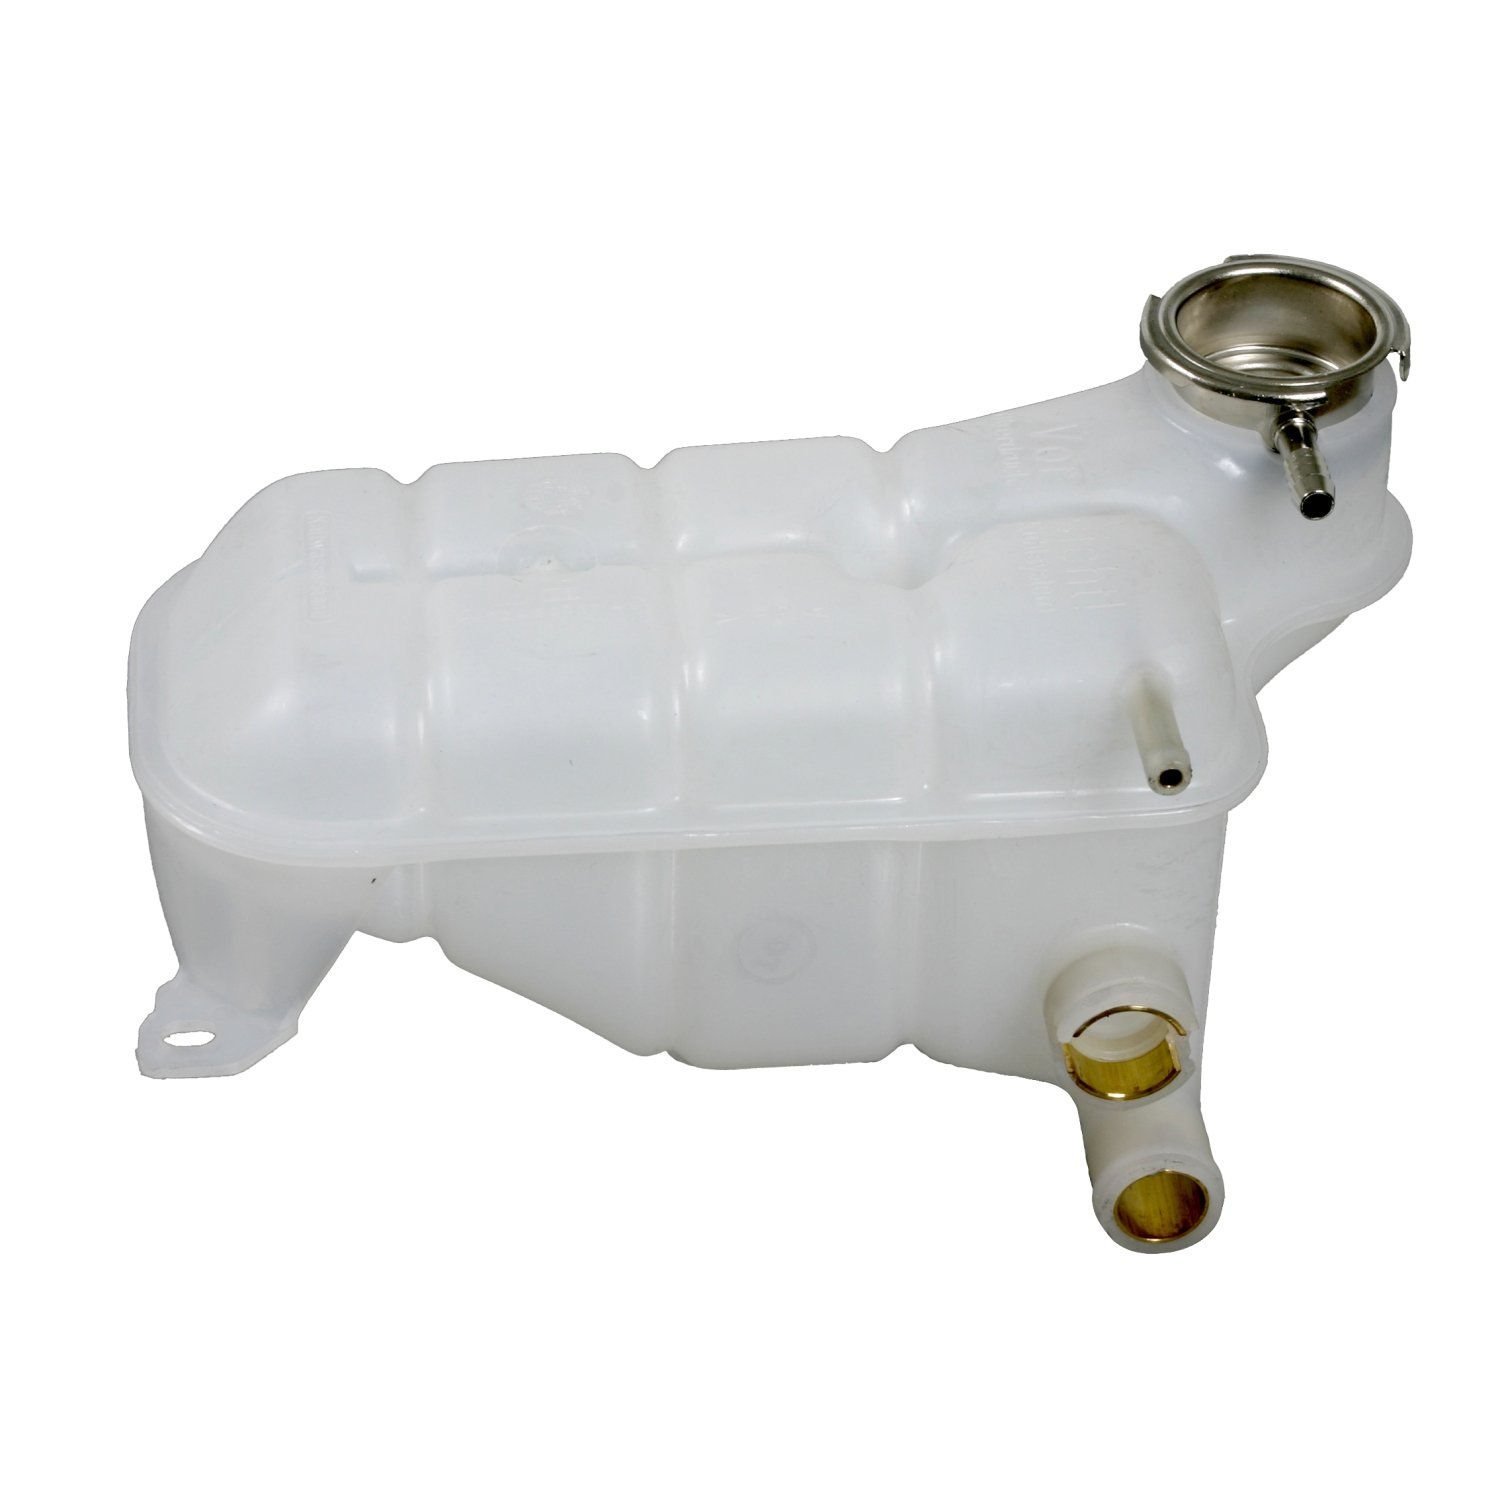 febi bilstein 22627 coolant expansion tank - Pack of 1